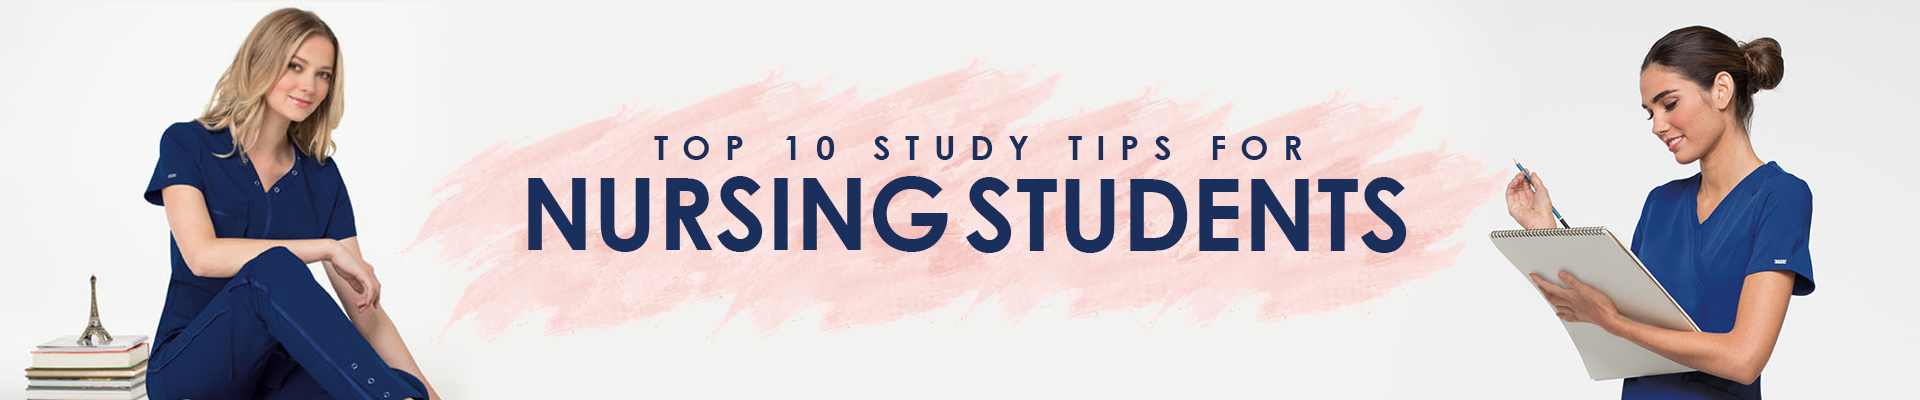 Top 10 Study Tips for Nursing Students